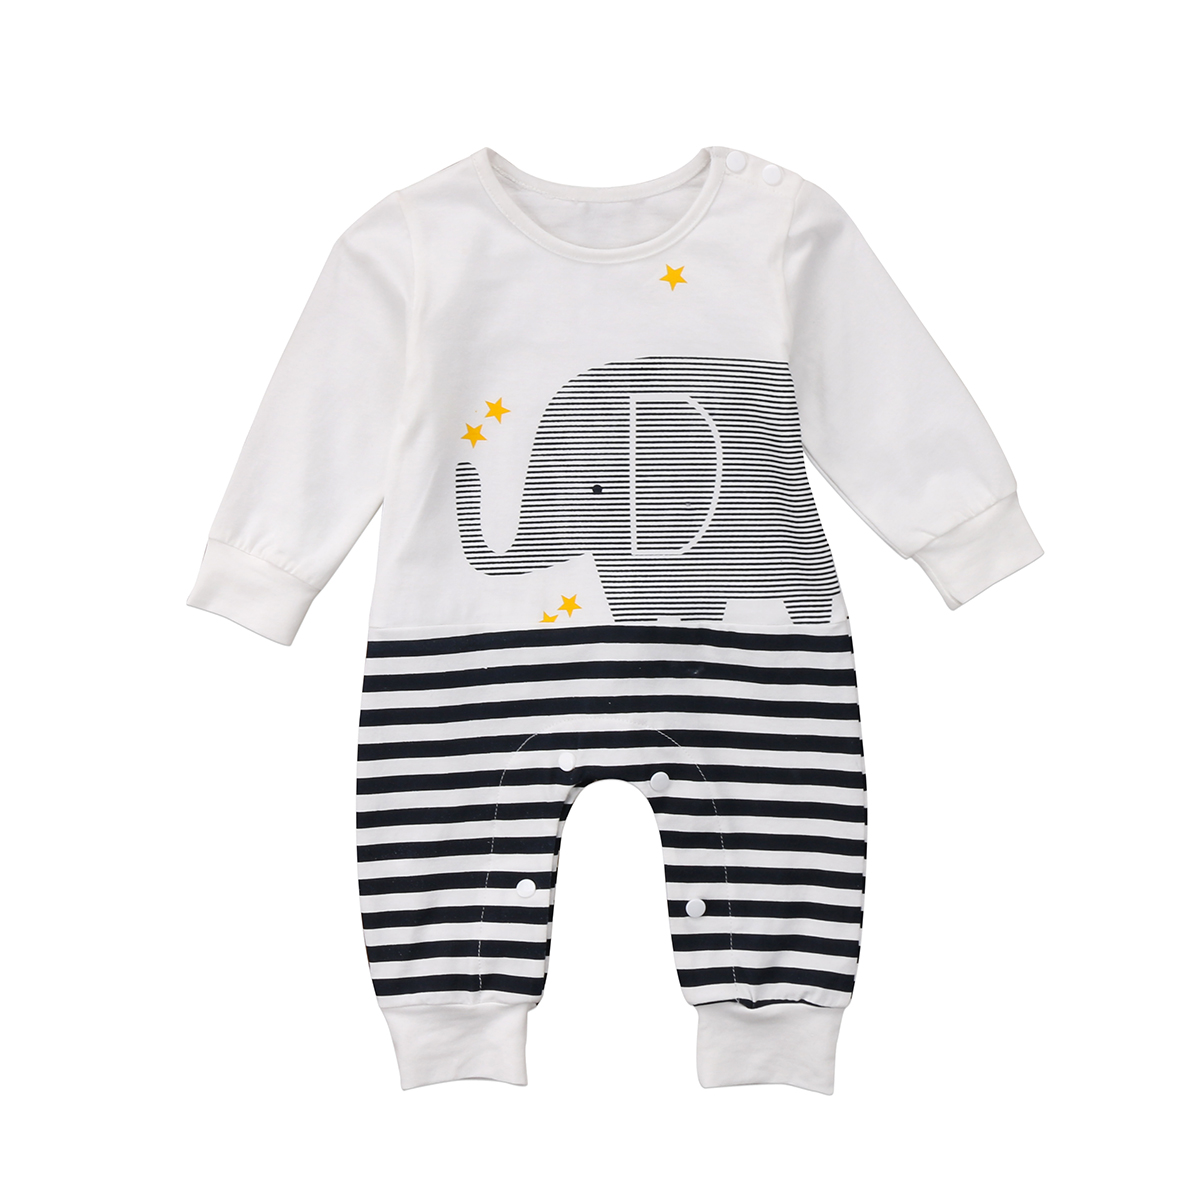 Kids Baby Girls Boys Elephant Striped   Romper   Jumpsuit Outfits One-pieces Long Sleeve O-Neck   Rompers   Clothes